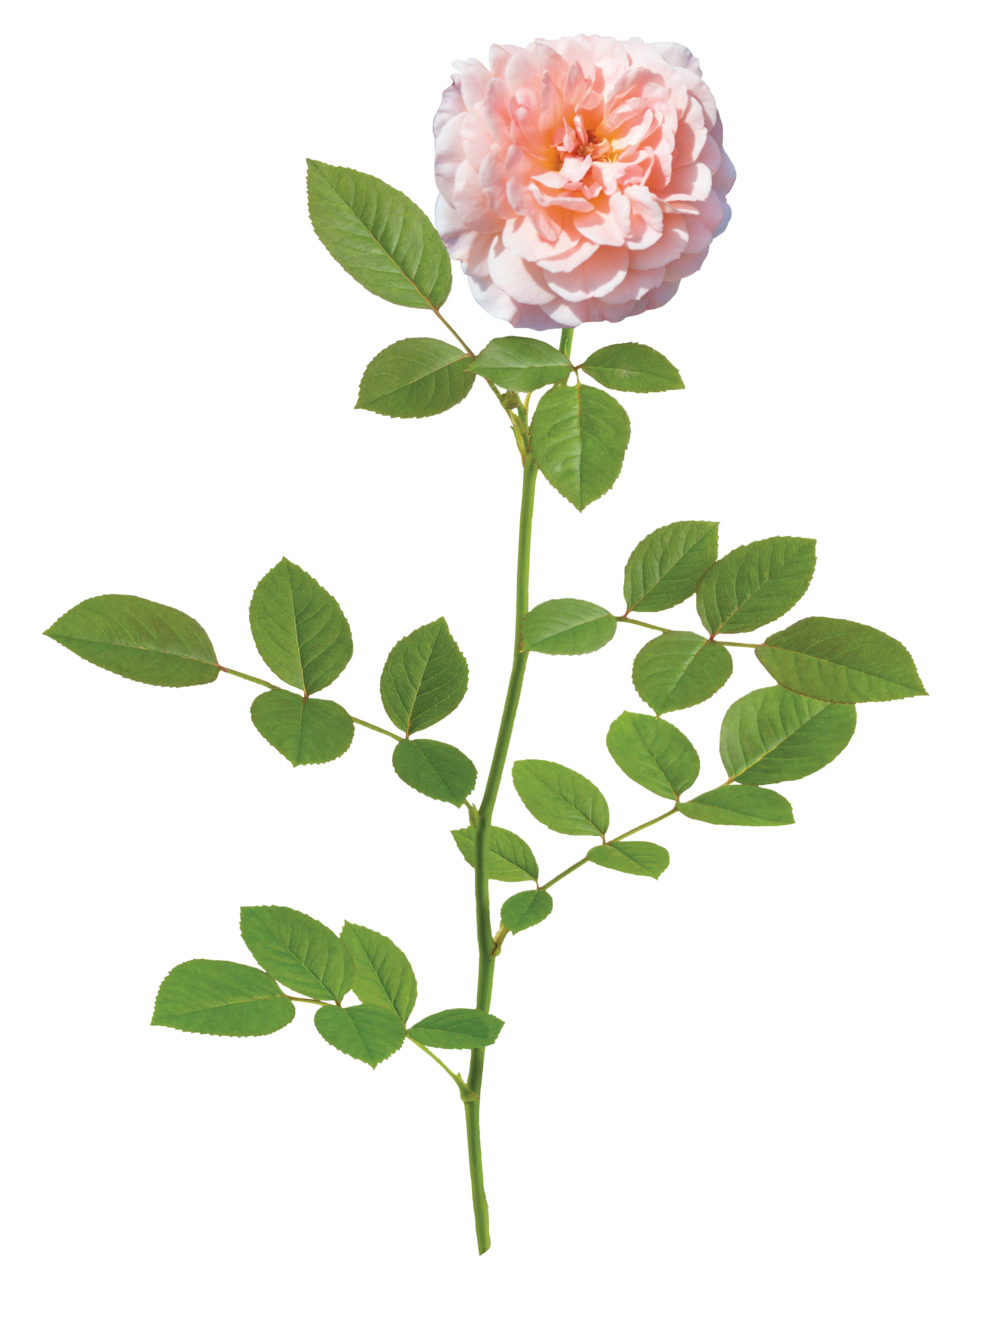 the Apricot Drift® rose - 'Meimirrote' PP 23,354The Apricot Drift® Rose exhibits a true groundcover habit. Double apricot colored flowers begin in spring and display a season-long show of color. It is just as tough and disease resistant as others in the Drift® series. It is best suited for small gardens or along paths and walkways.Zones: 4–11   |   Exposure: Full sun   |   Habit: 1½h x 2½'w